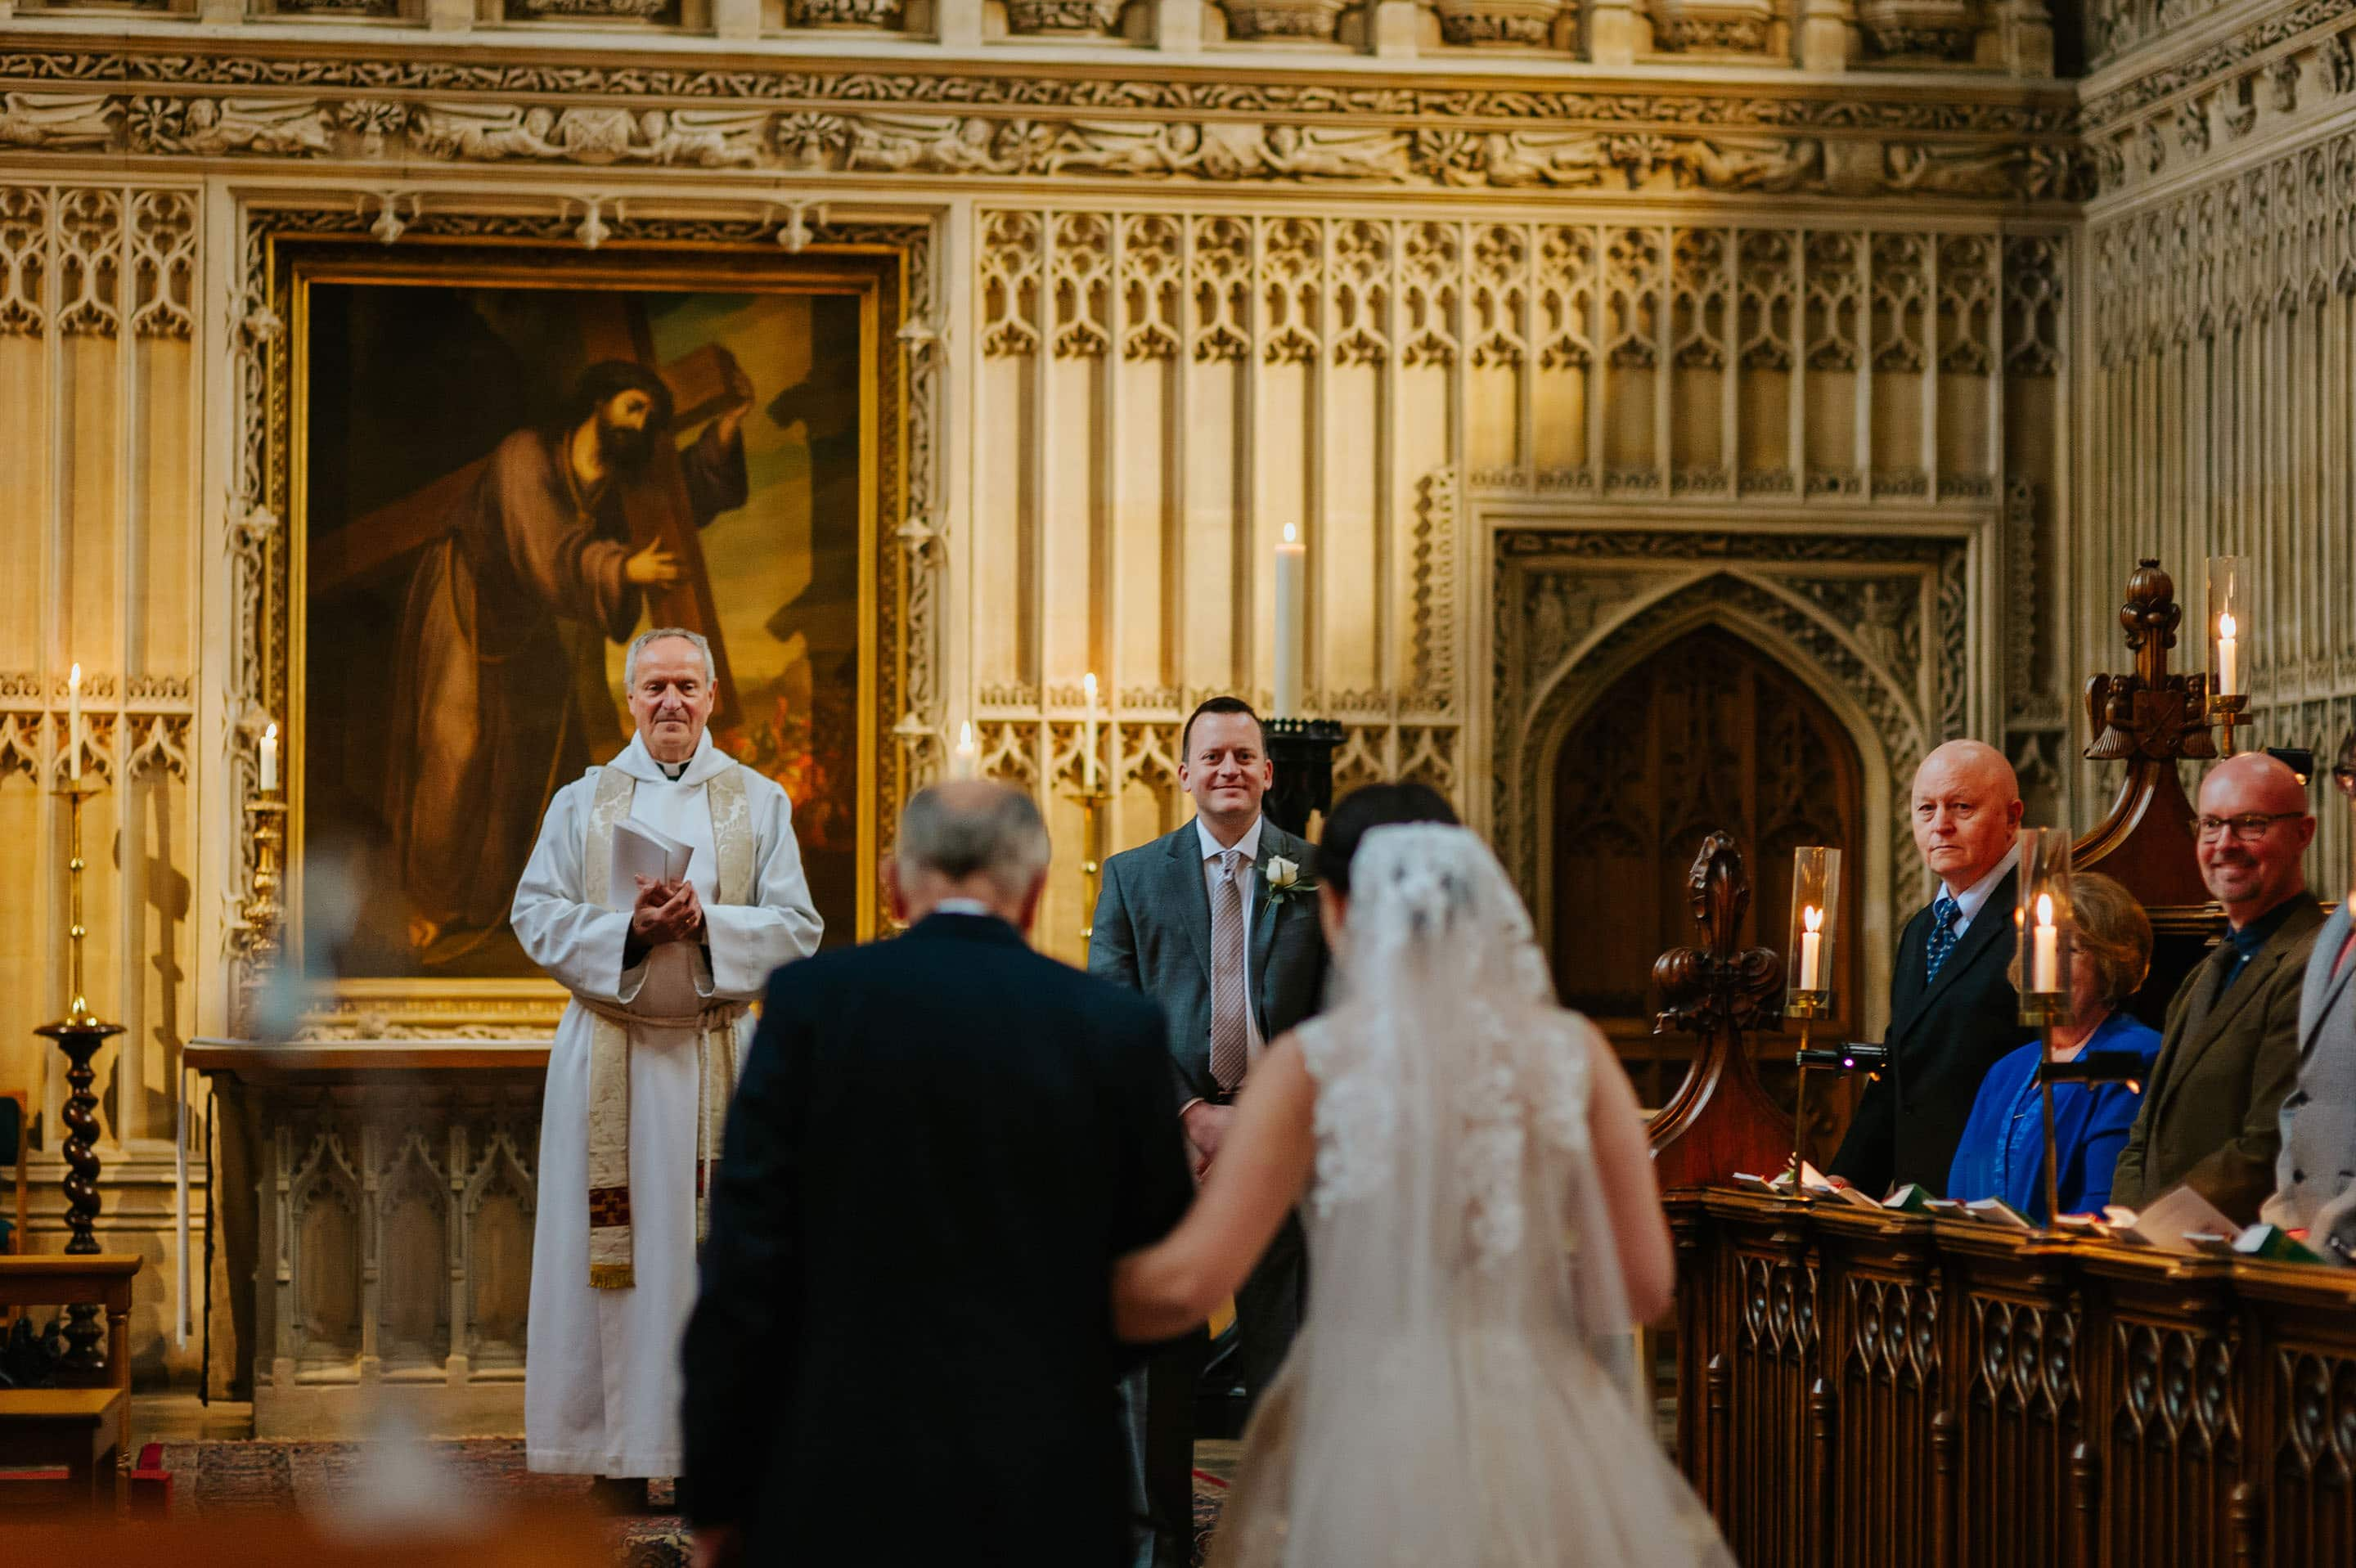 wedding at magdalen college in oxford 22 - Tommie + Virginia | Wedding at Magdalen College in Oxford